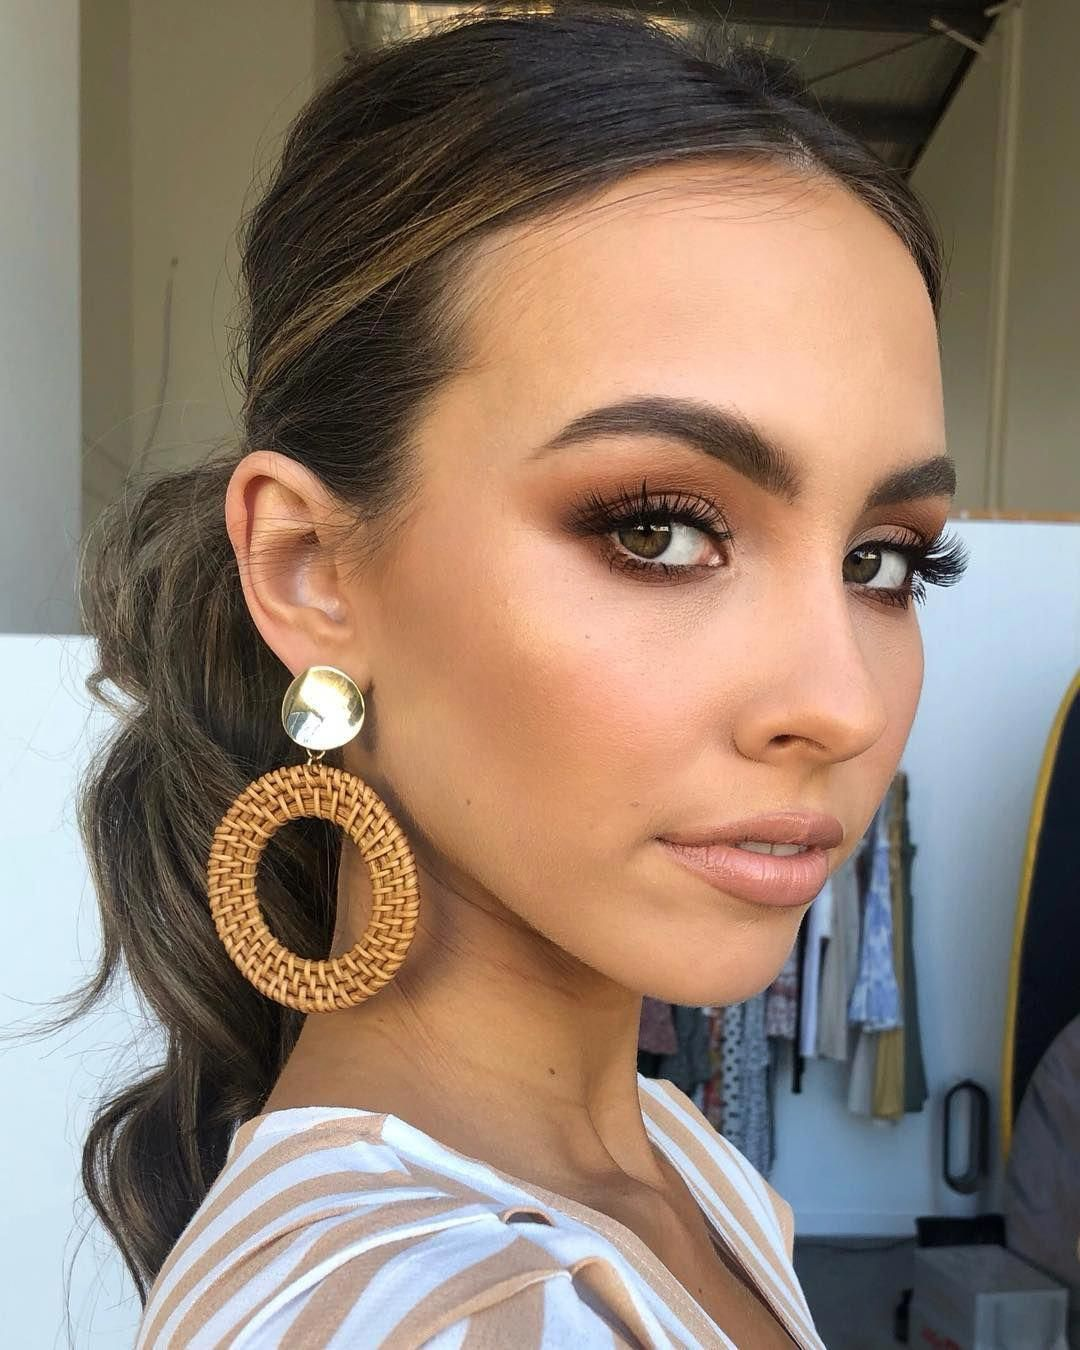 8 Truly Stunning Wedding Makeup Looks to Copy